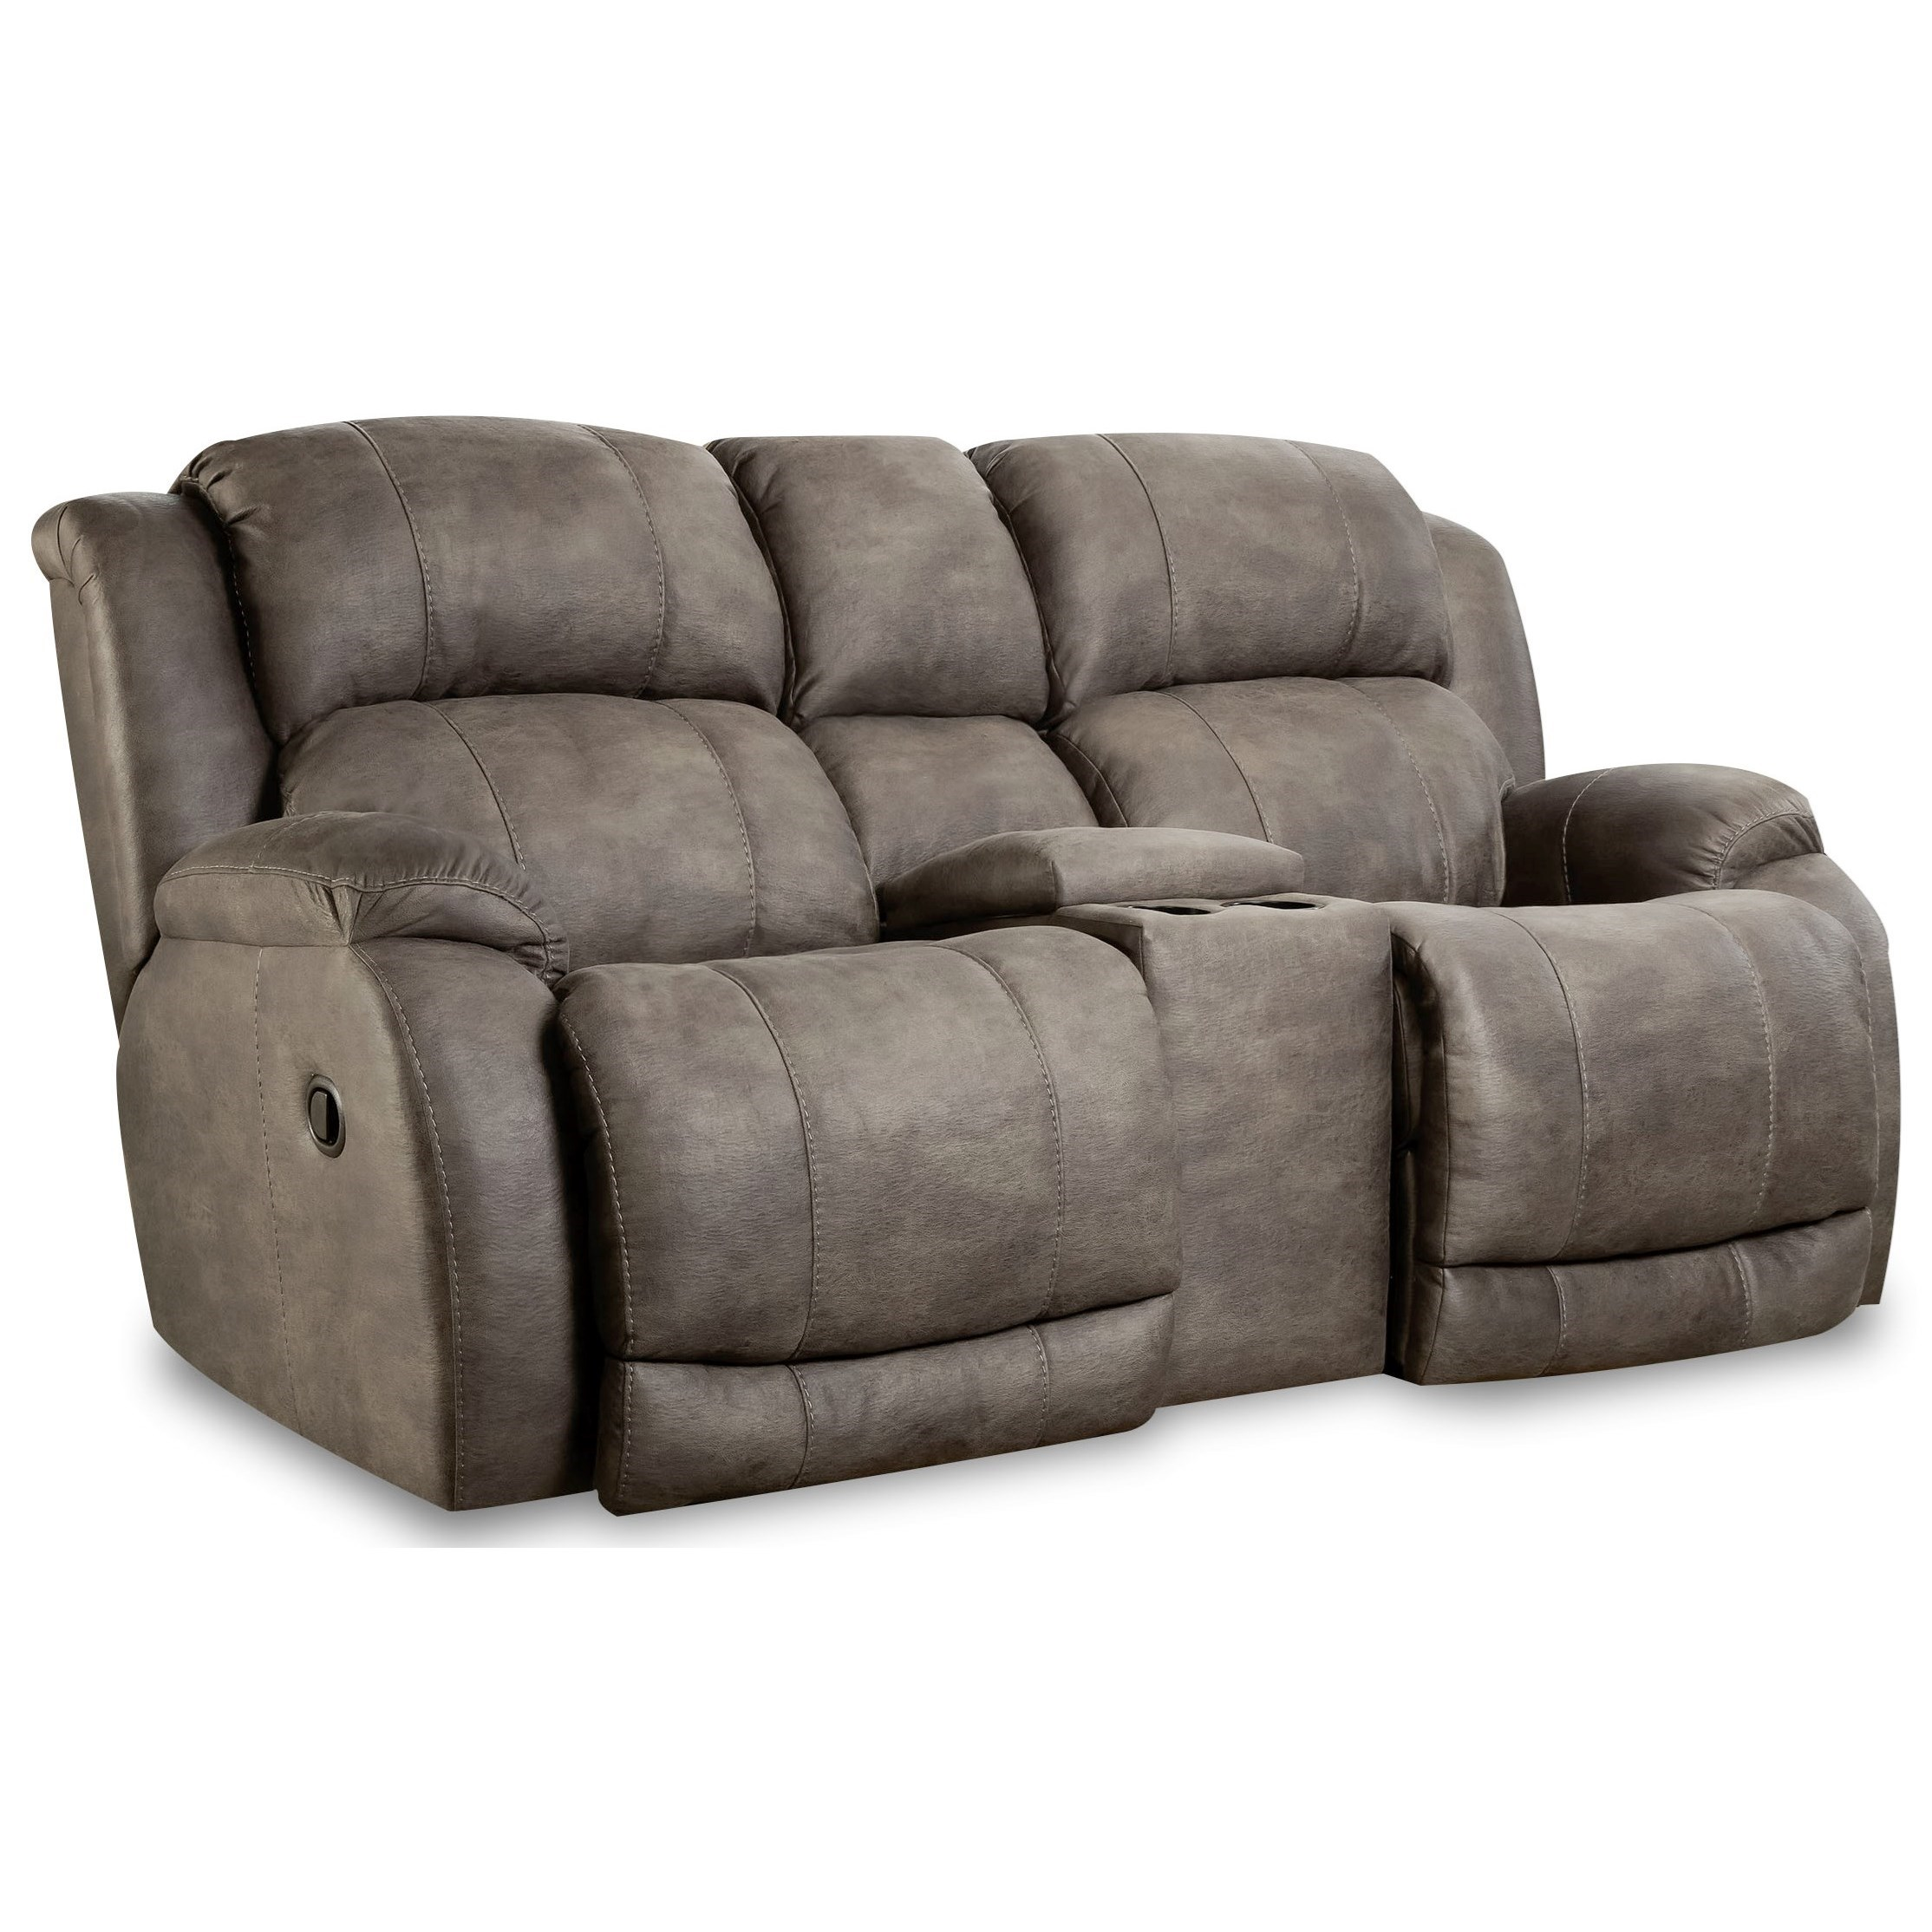 Denali Power Reclining Console Loveseat by HomeStretch at Powell's Furniture and Mattress